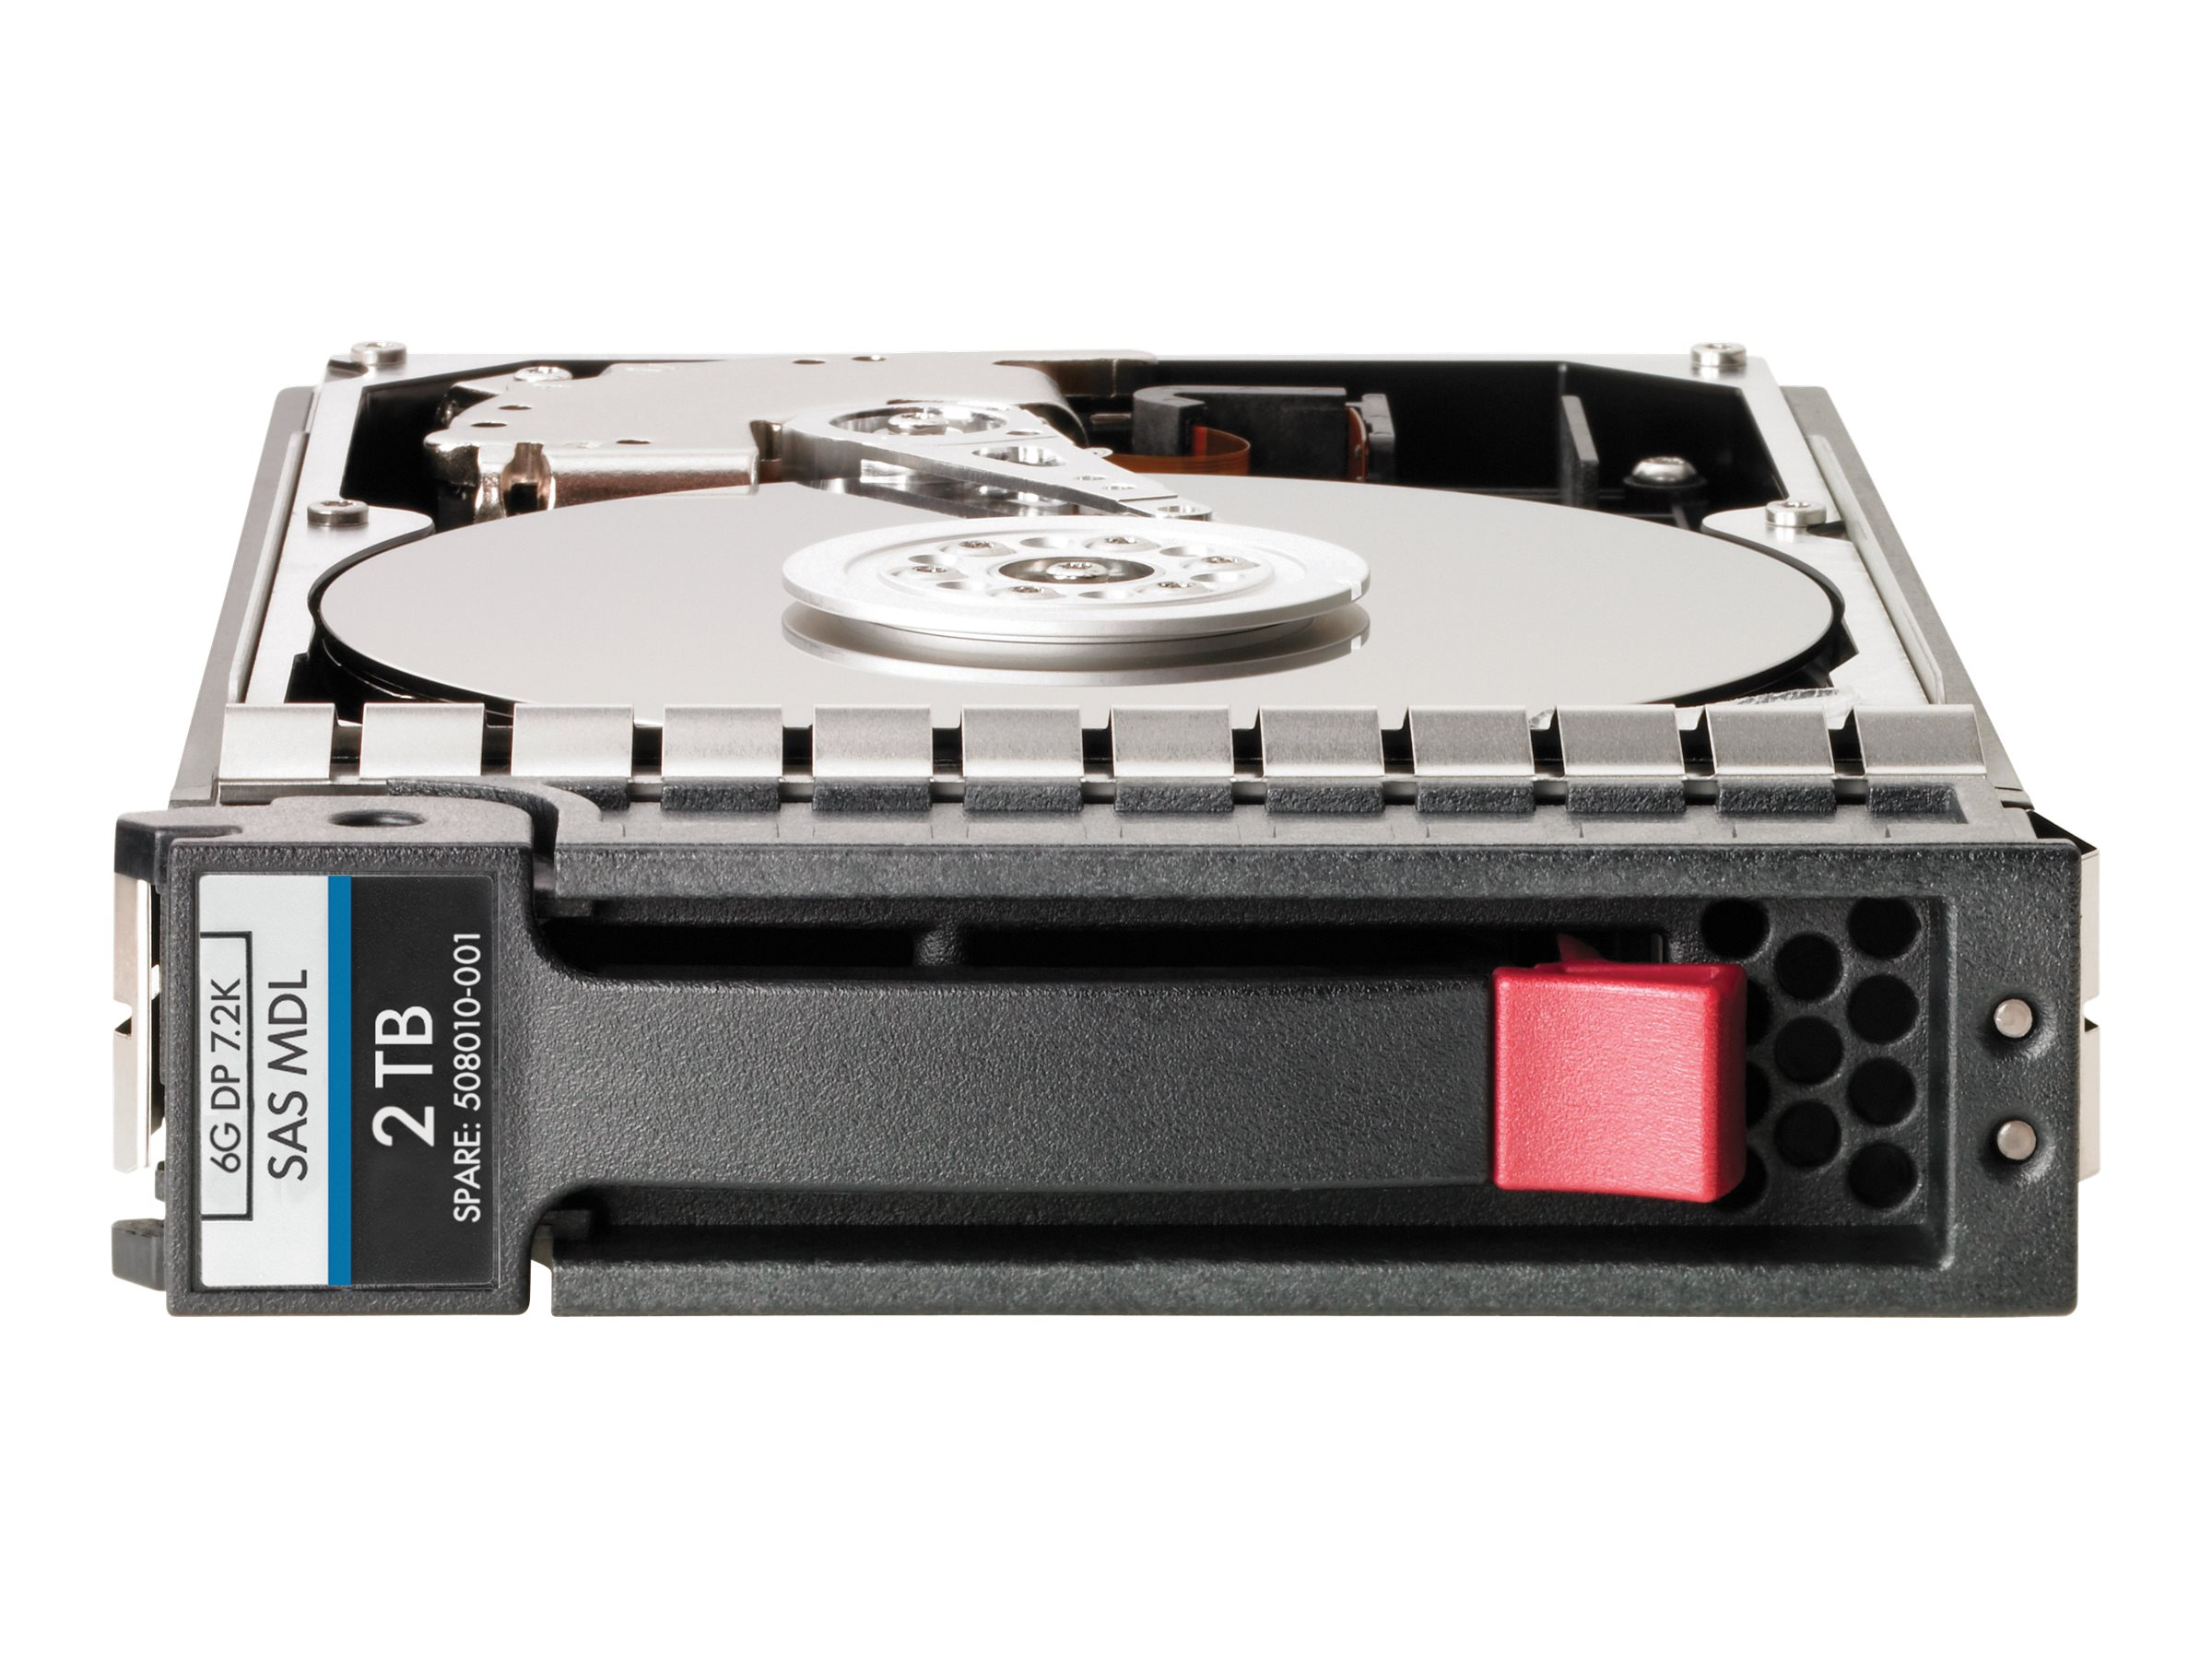 HPE Enterprise - hard drive - 2.4 TB - SAS 12Gb/s